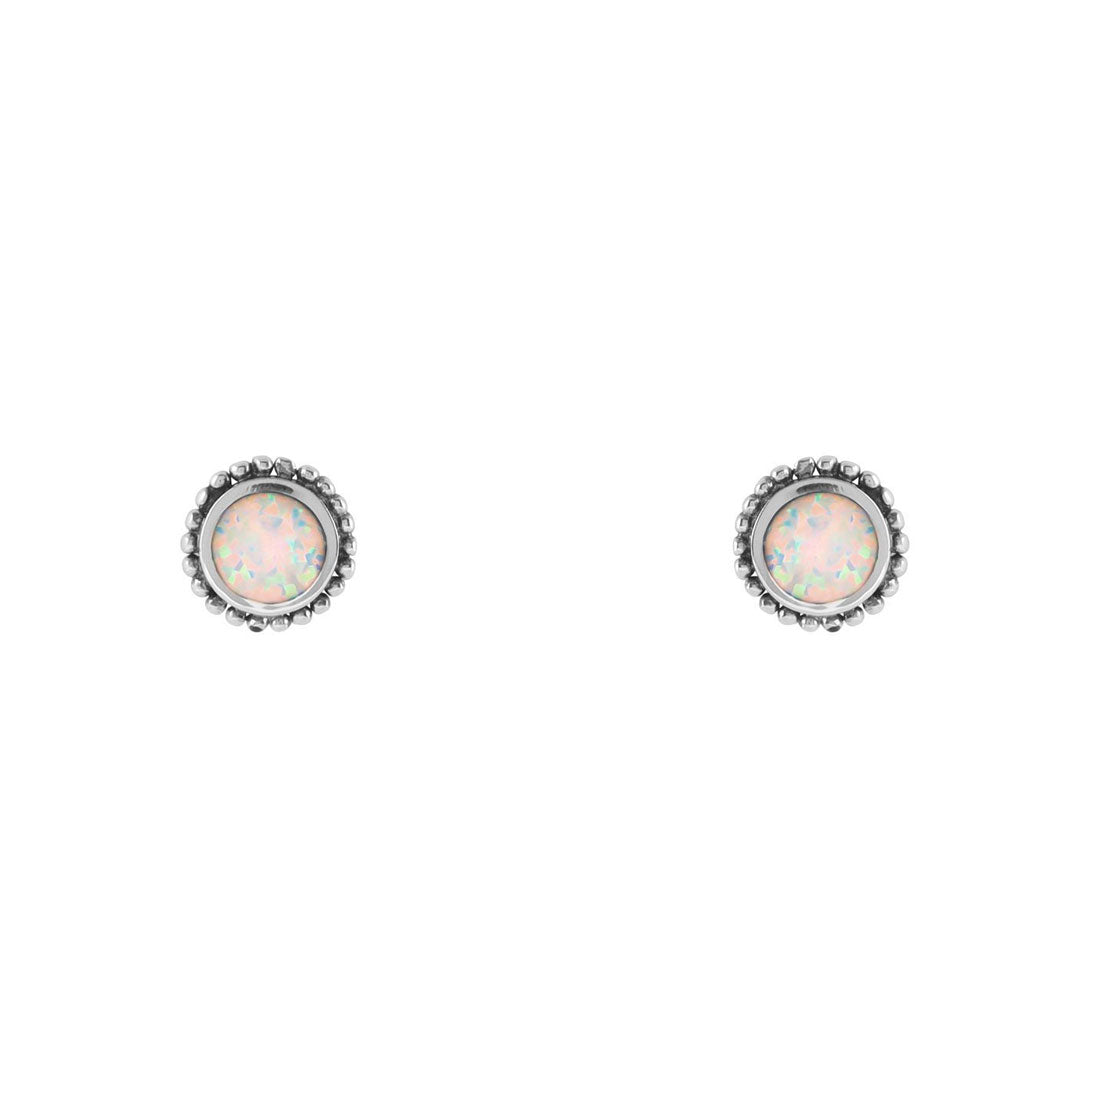 Midsummer Star Earrings Opal Sun Studs